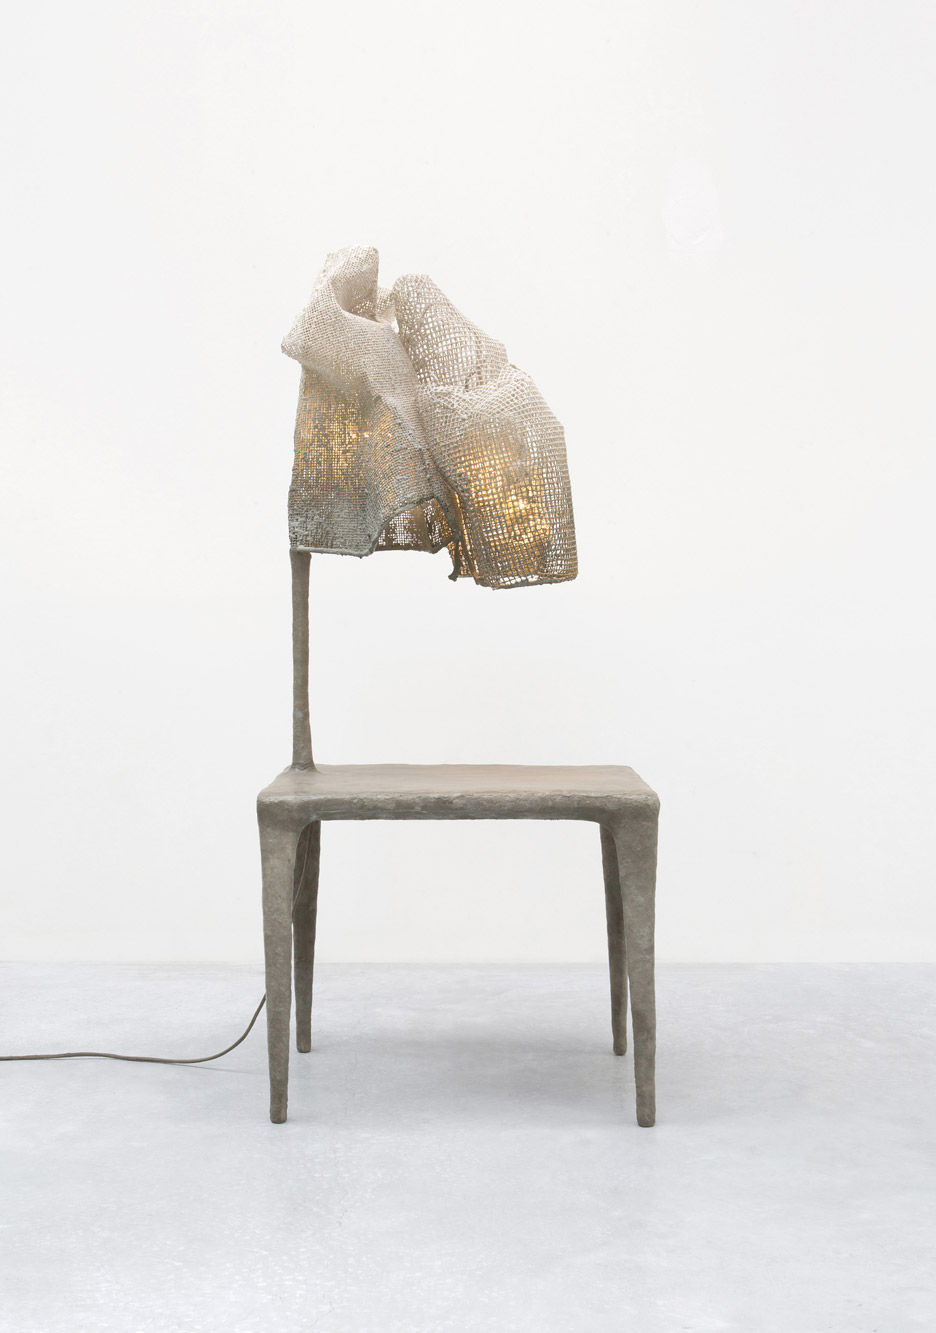 Nacho Carbonell wraps lamps in mesh cocoons for Carpenters Workshop exhibition